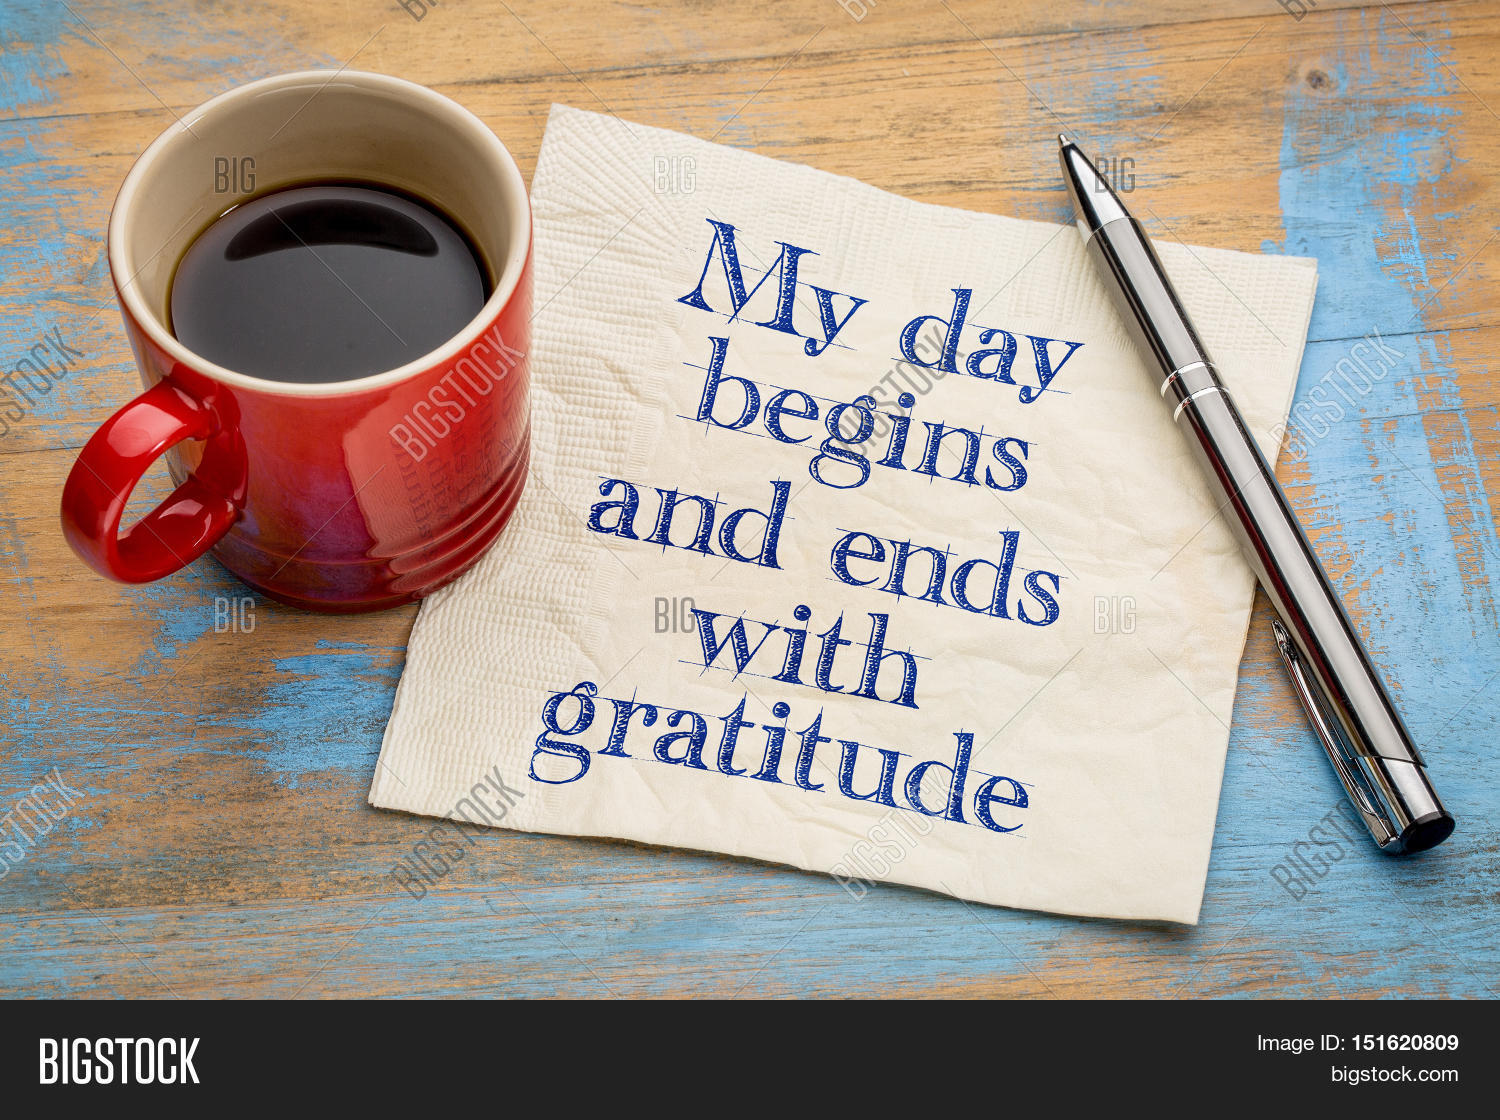 My Day Begins Ends Image & Photo (Free Trial) | Bigstock